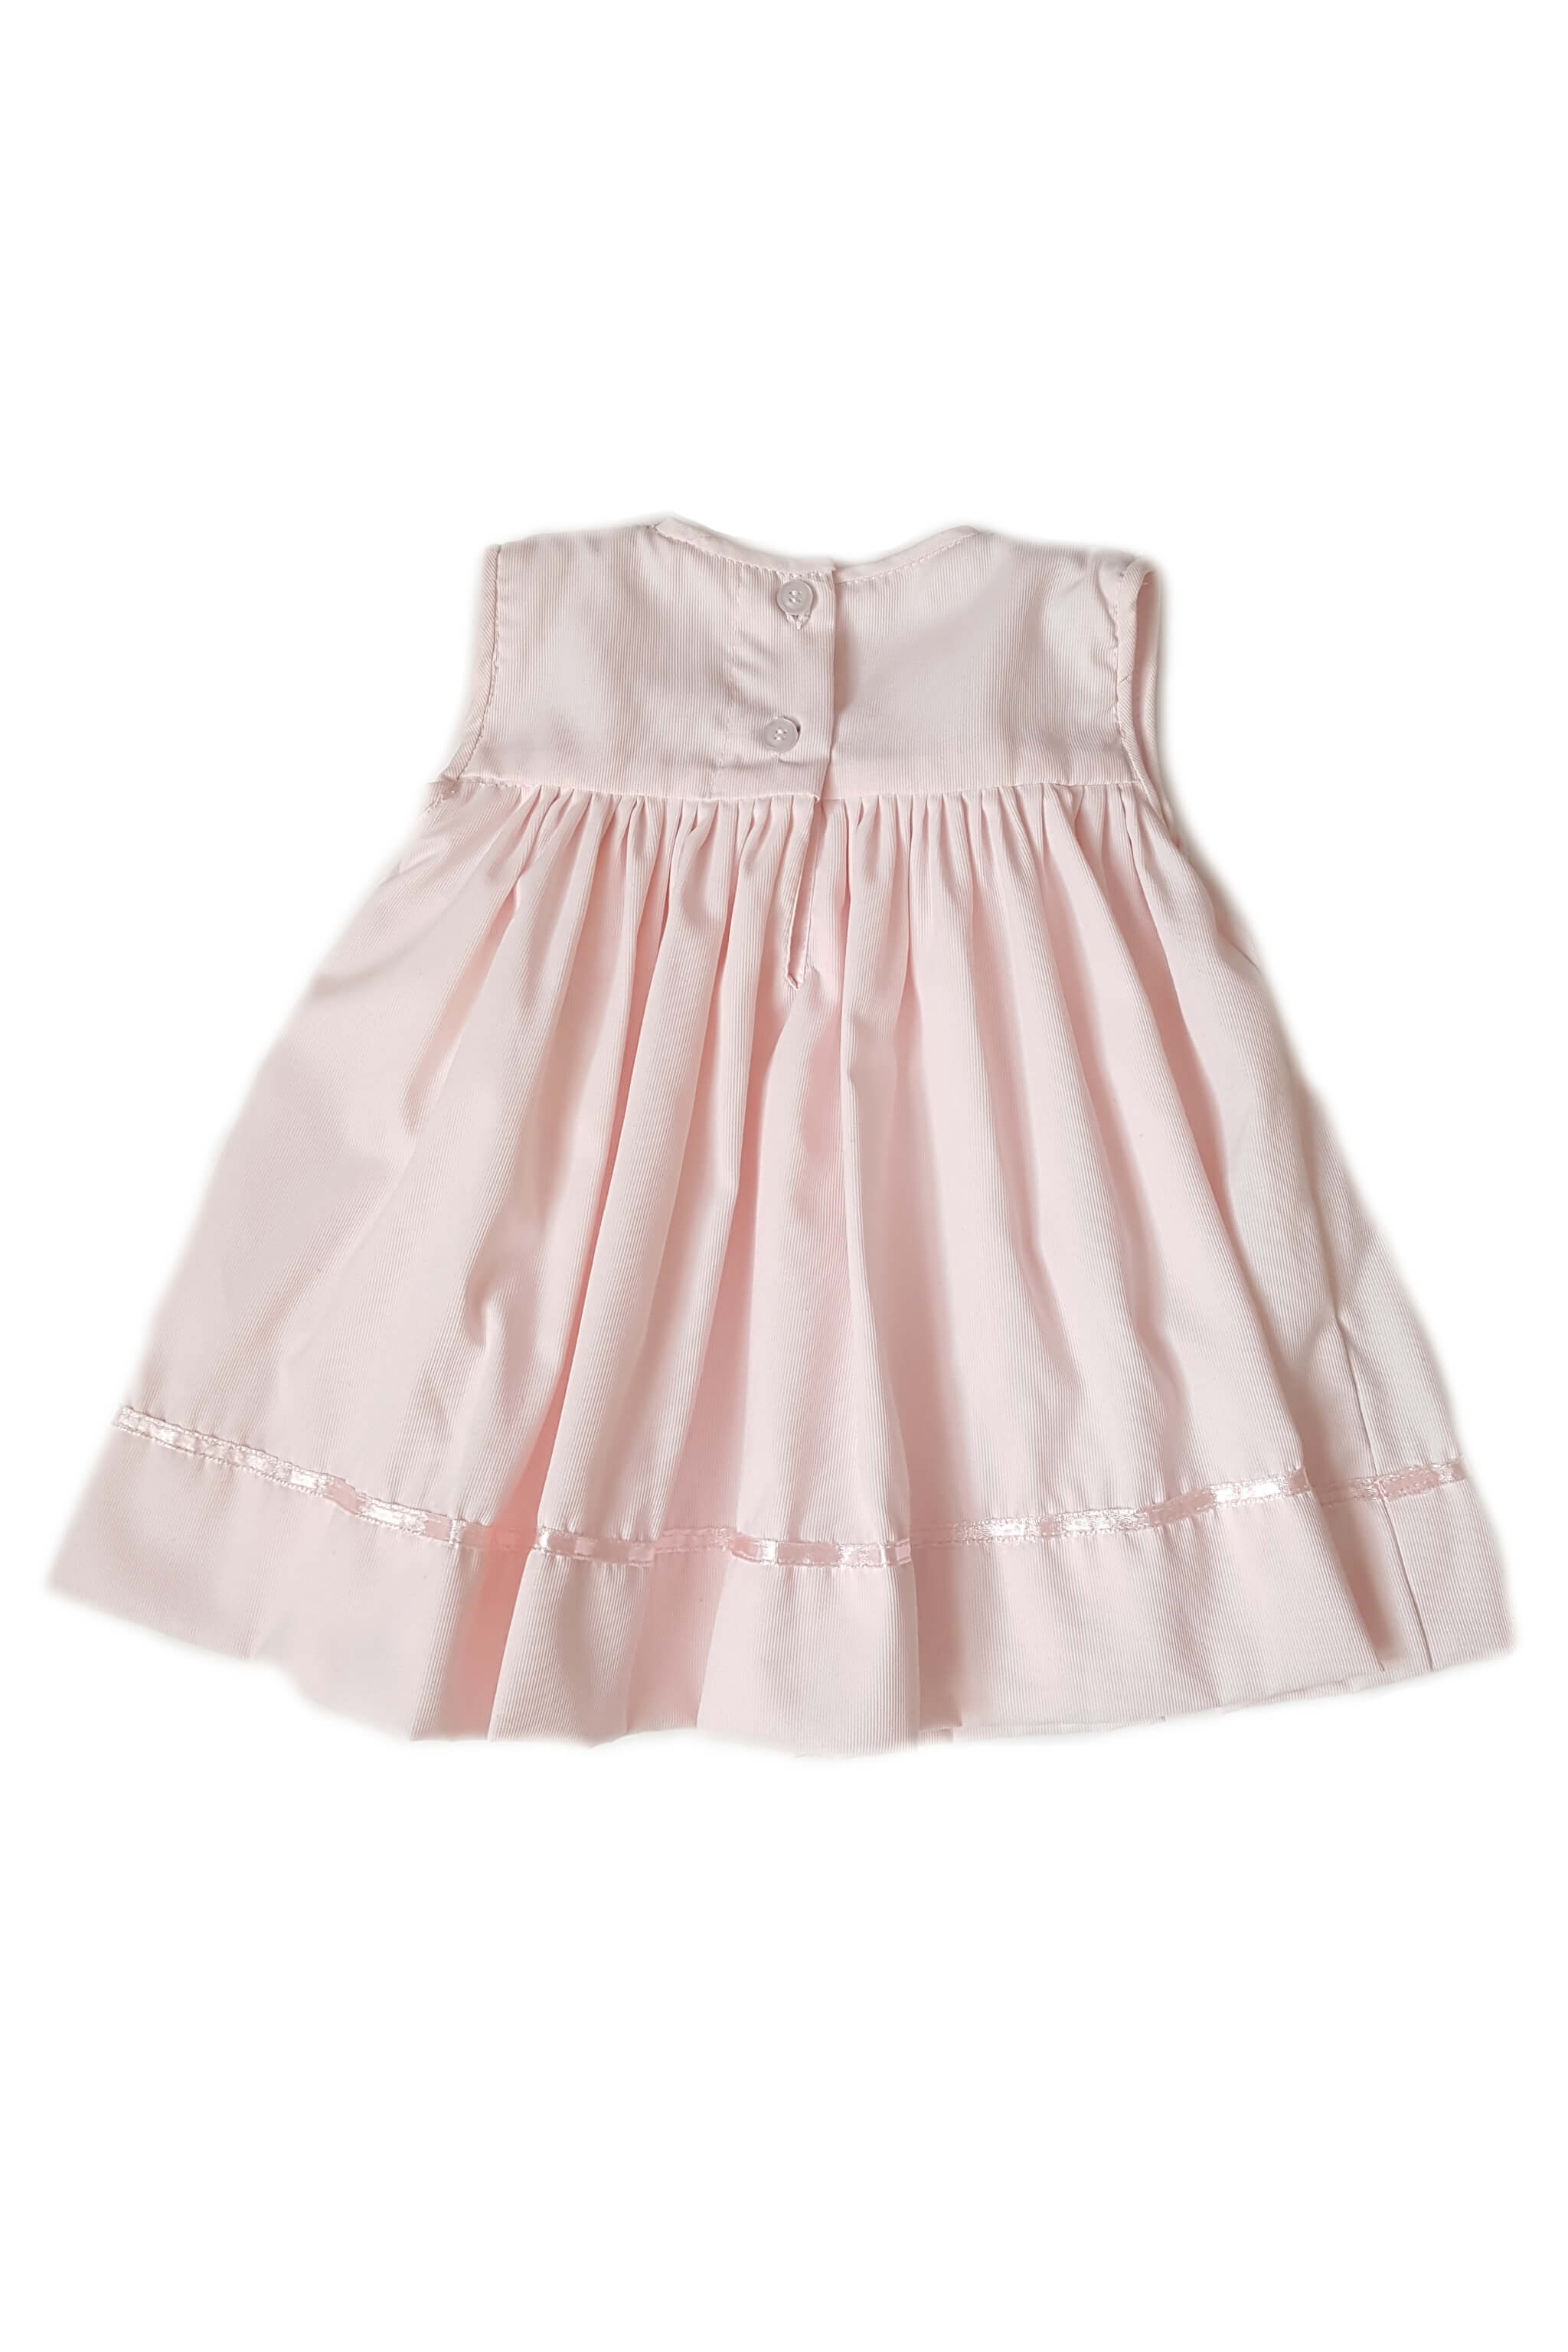 Back of traditional and classic little blush pink dress pink satin ribbon trim and hand-embroidered collar with button back for baby girls